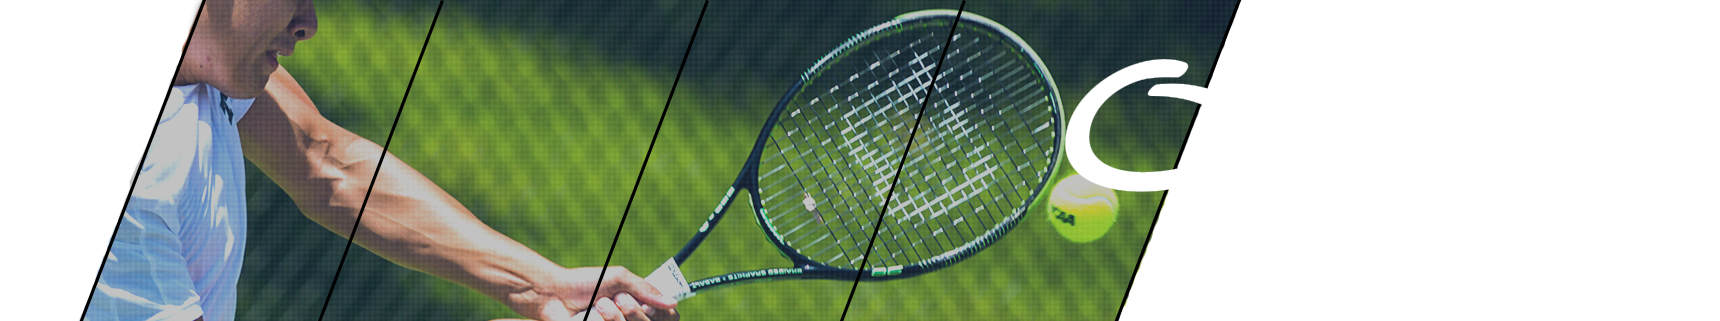 websitebanner_tennisleague